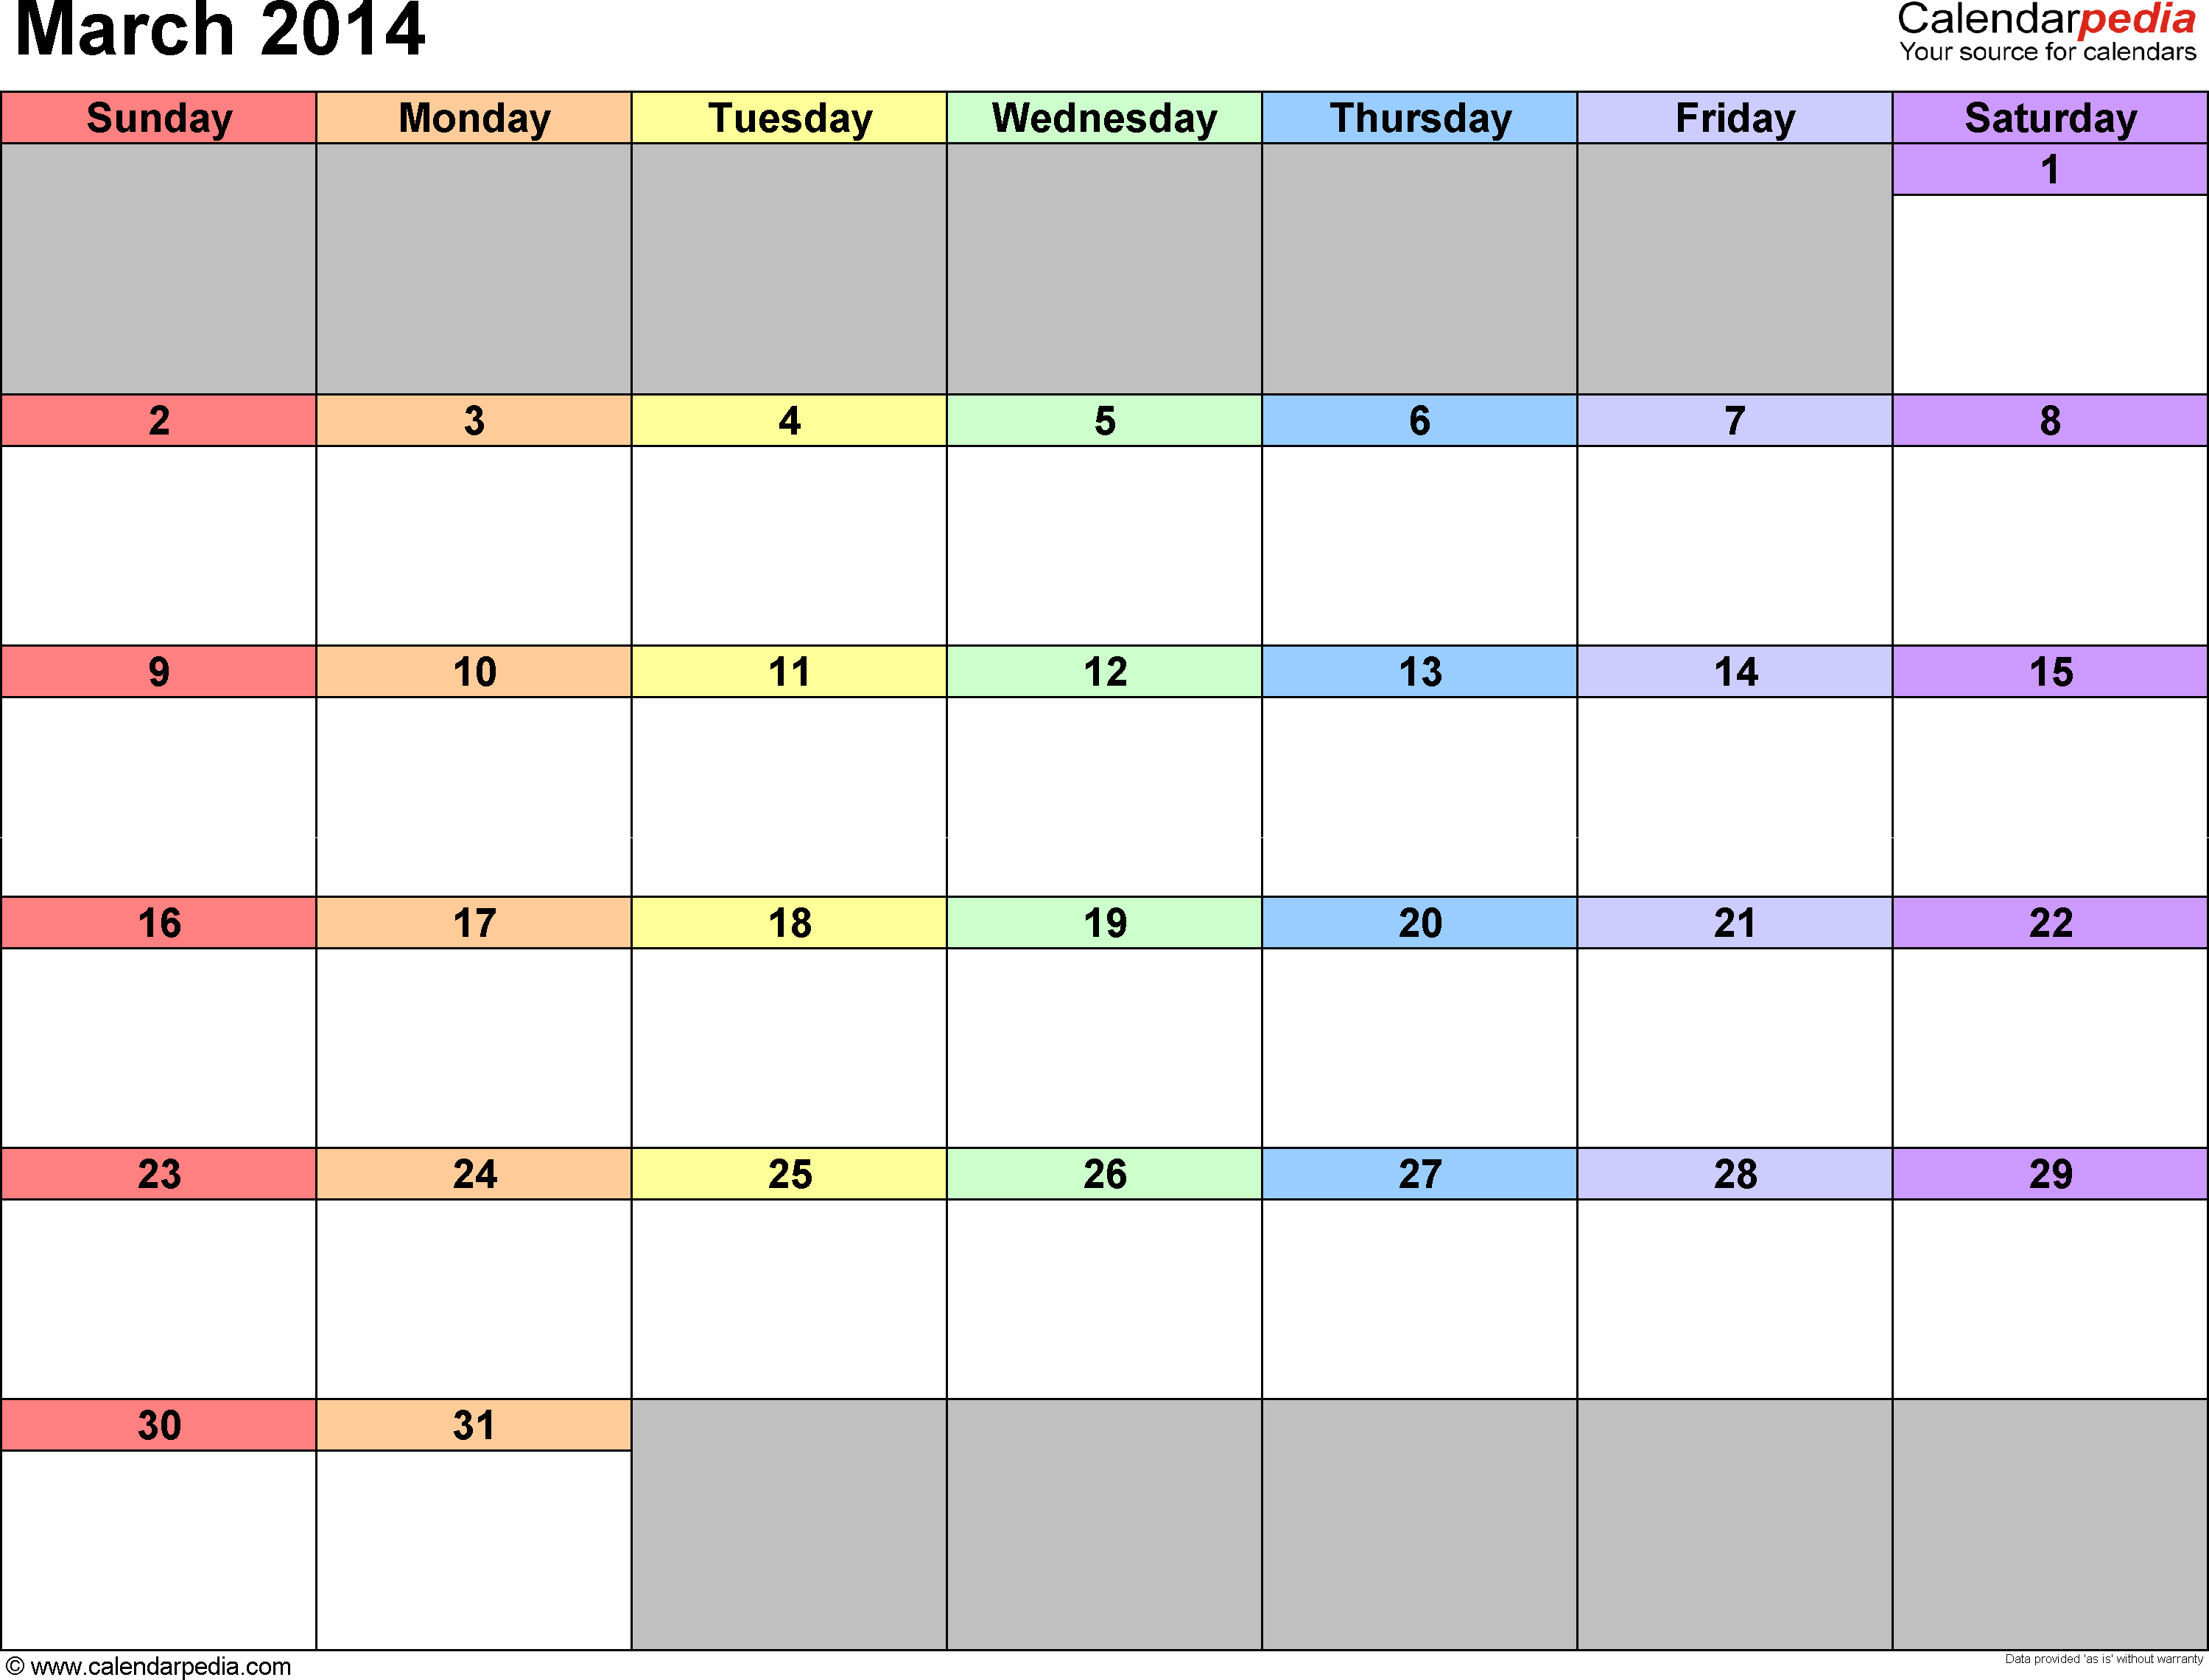 March 2014 calendar printable template